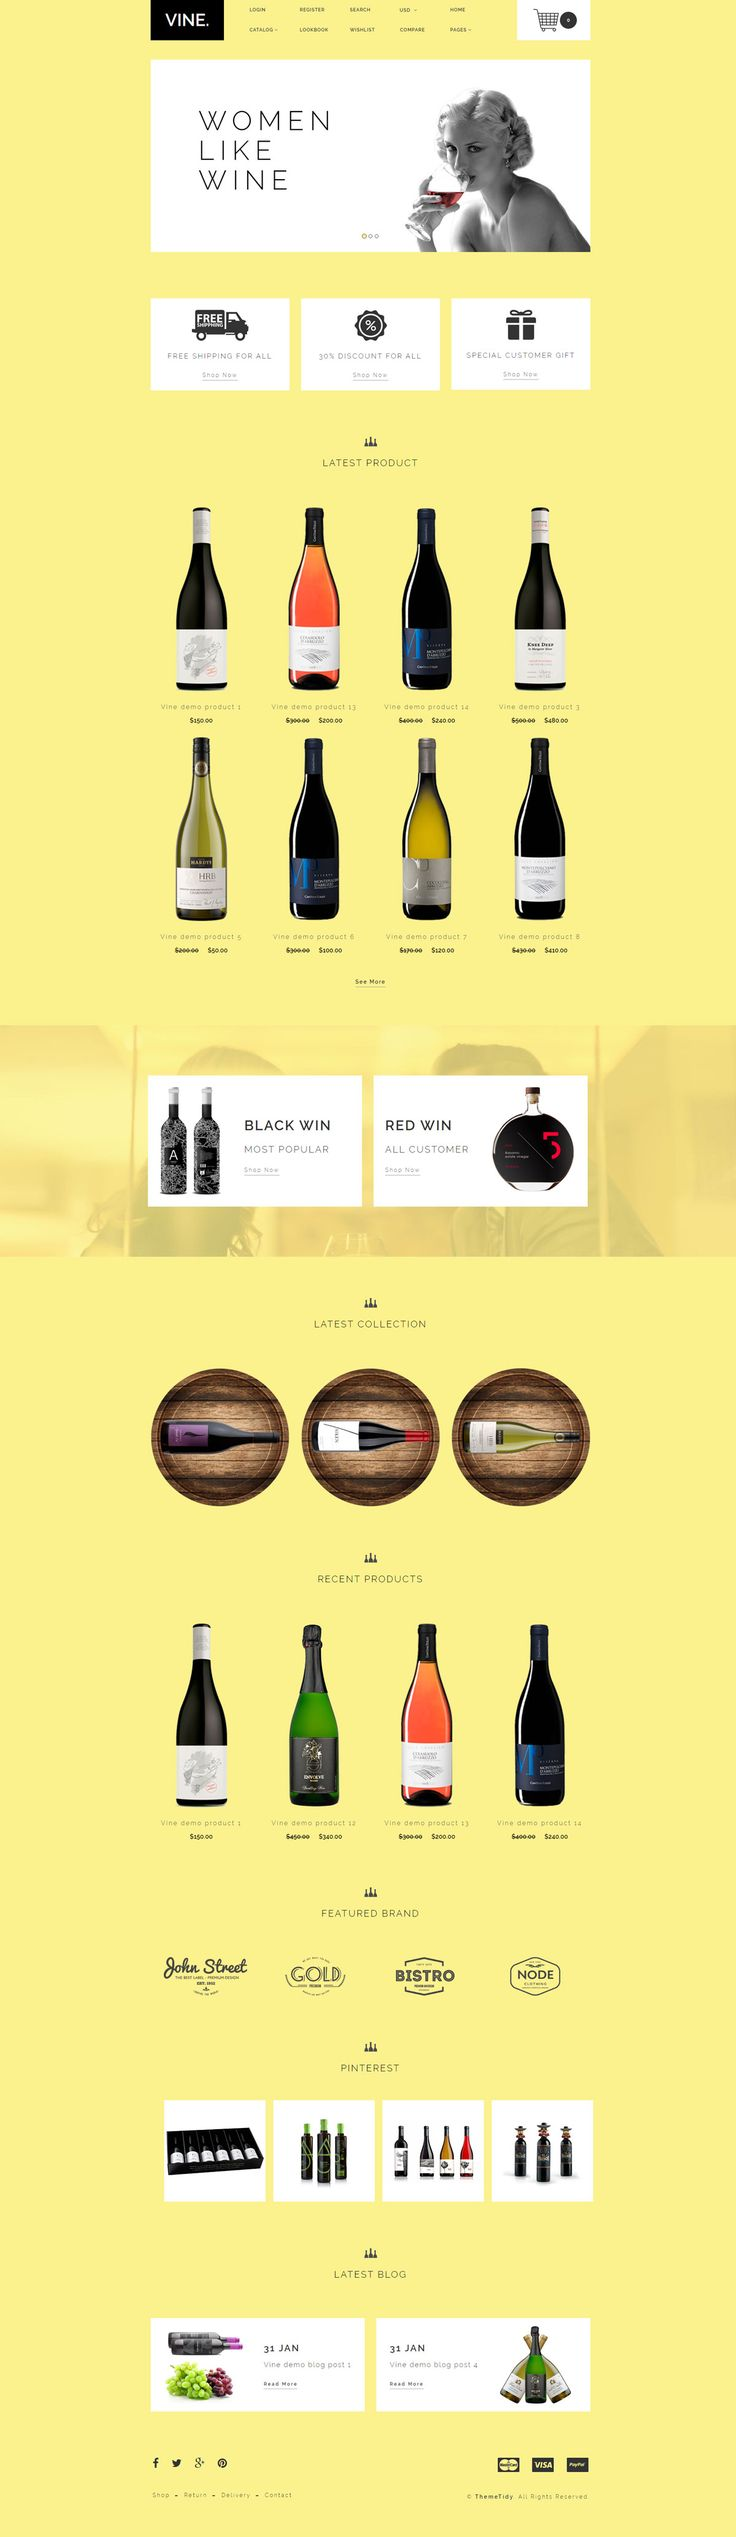 Vine – Responsive Drink & Food eCommerce Shopify Theme Download Link: https://www.themetidy.com/item/vine-responsive-drink-food-ecommerce-shopify-theme/ #drinkshop #wine #foodshopifythemes #drinkshopifythemes #cafesshopifythemes #restaurantsshopifythemes #fresh #event #party #tasty #healthy #order #recipes #delicious #bar #tablebooking #cookingstore #eat #chef #organicshop #delivery #pub #menu #bootstrapshopifythemes #ecommerceshopifythemes #responsiveshopifythemes…